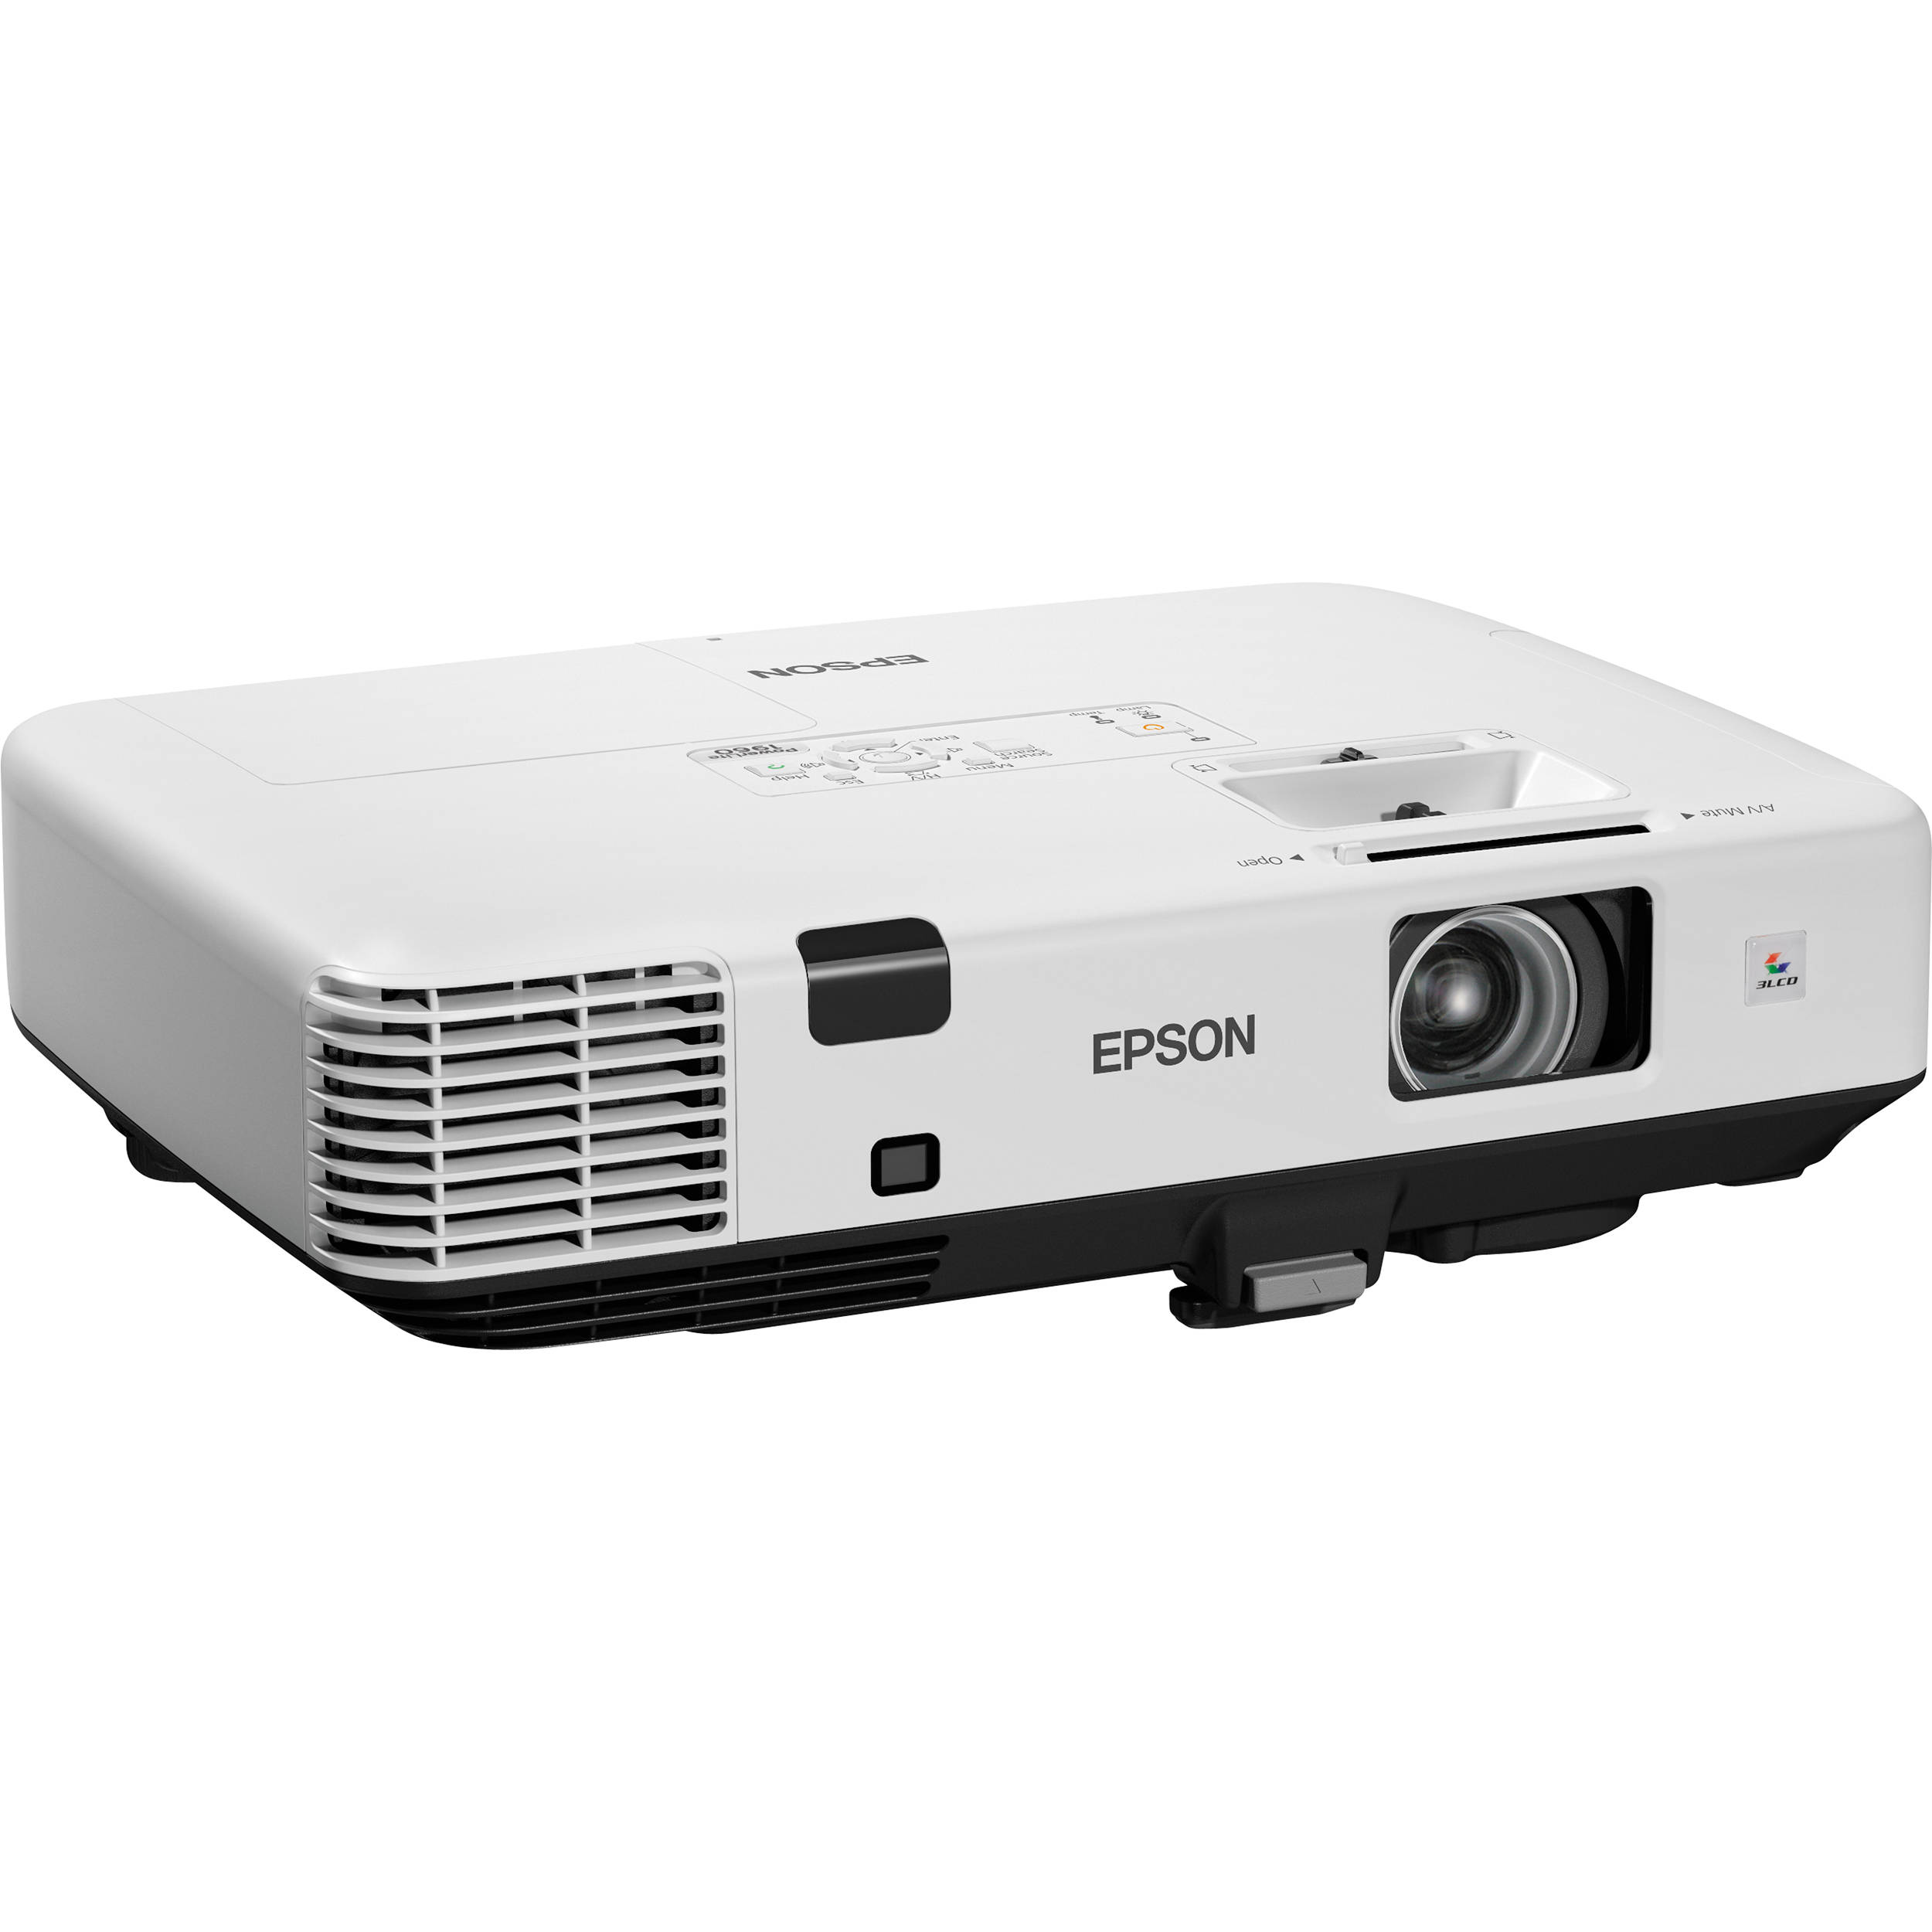 compare hitachi cp x5022wn 5000 lumen xga 3lcd projector vs epson rh bhphotovideo com Epson PowerLite 83 Main Board epson powerlite 83+ lamp replacement